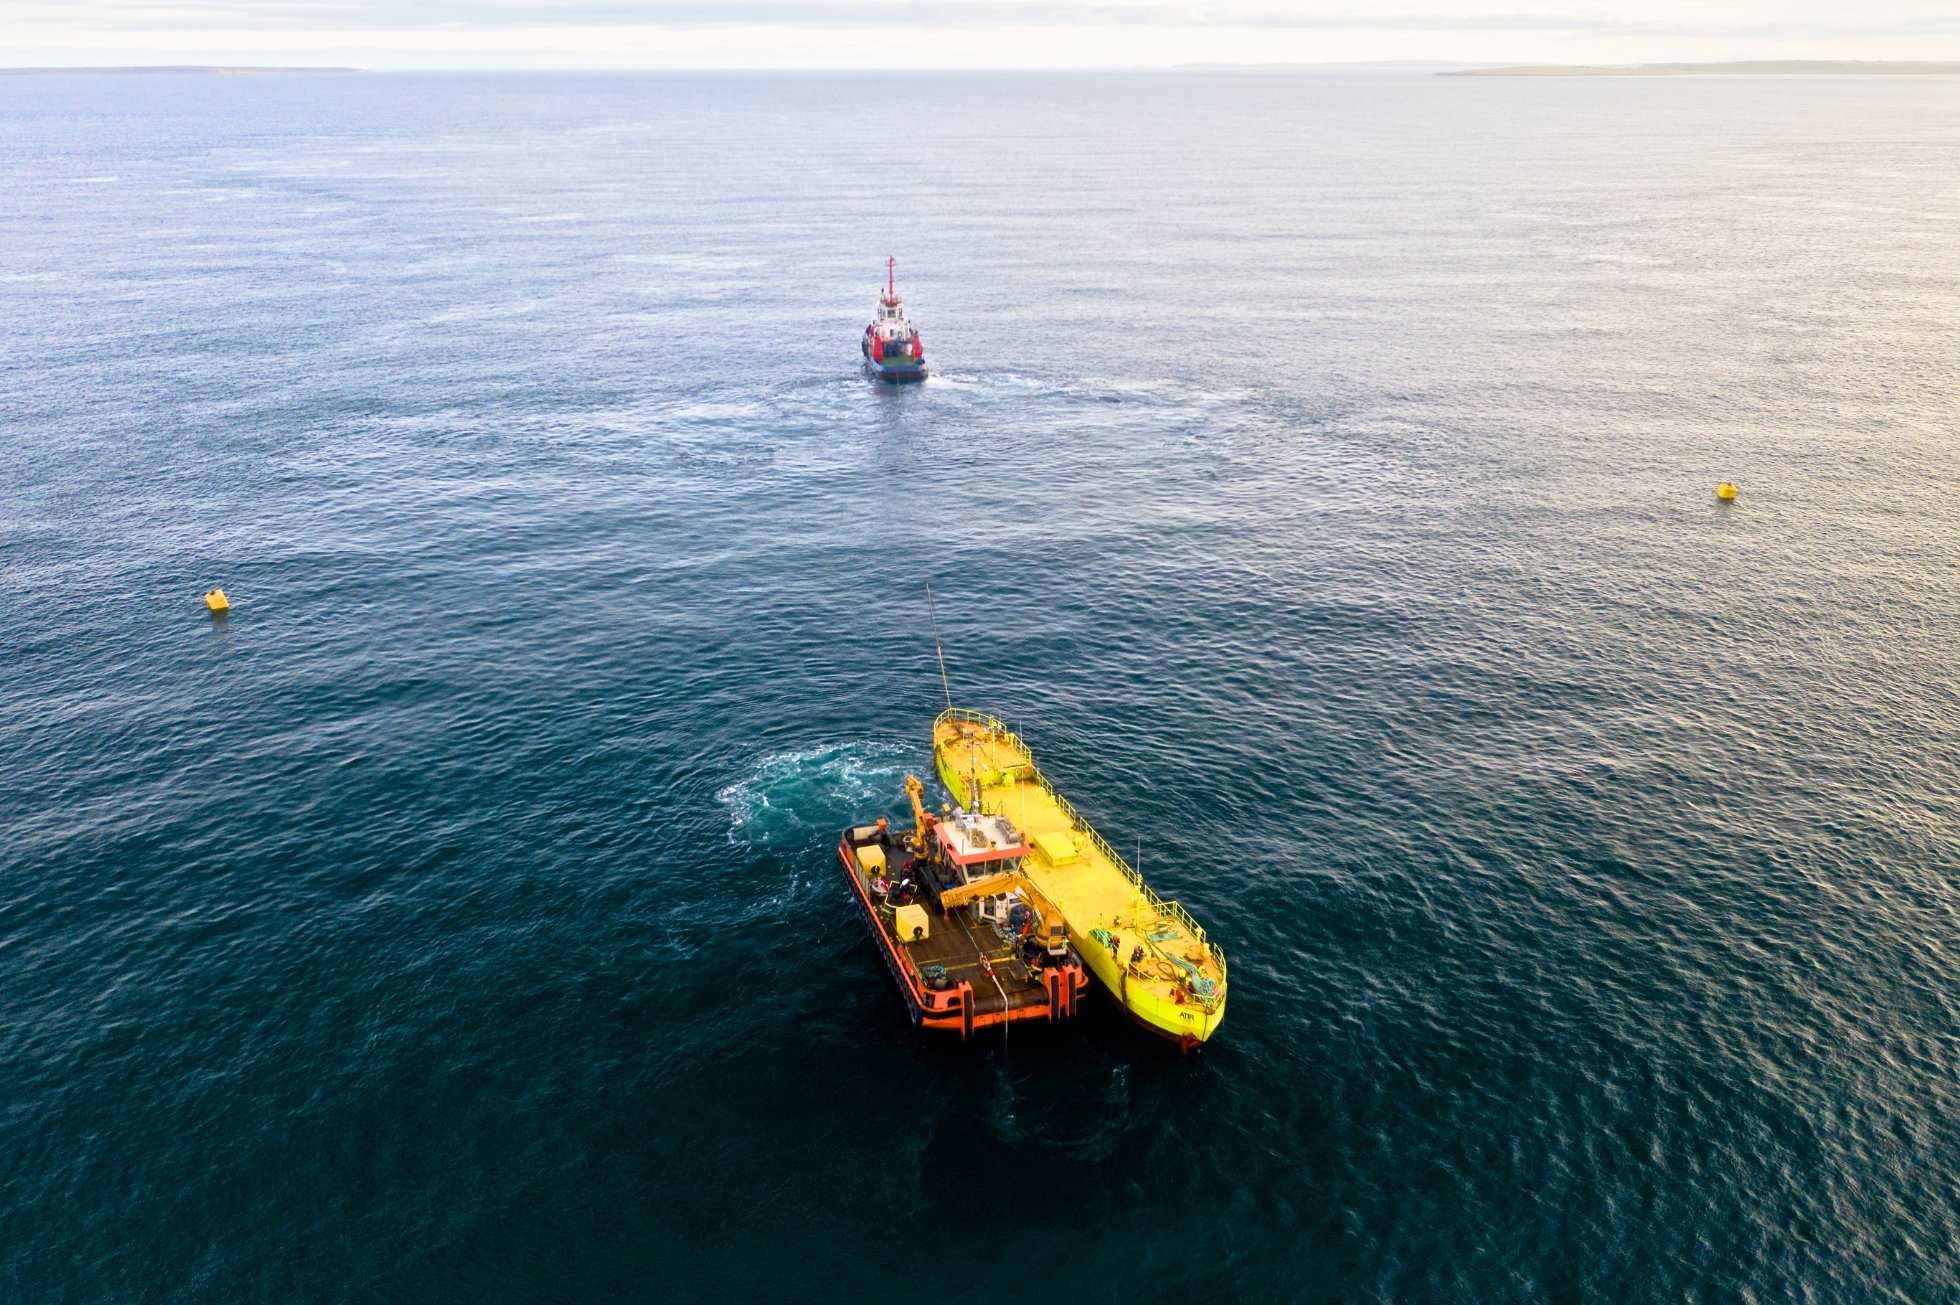 Aerial view of the work to install the ATIR device - image © Colin Keldie, courtesy Ocean_2G